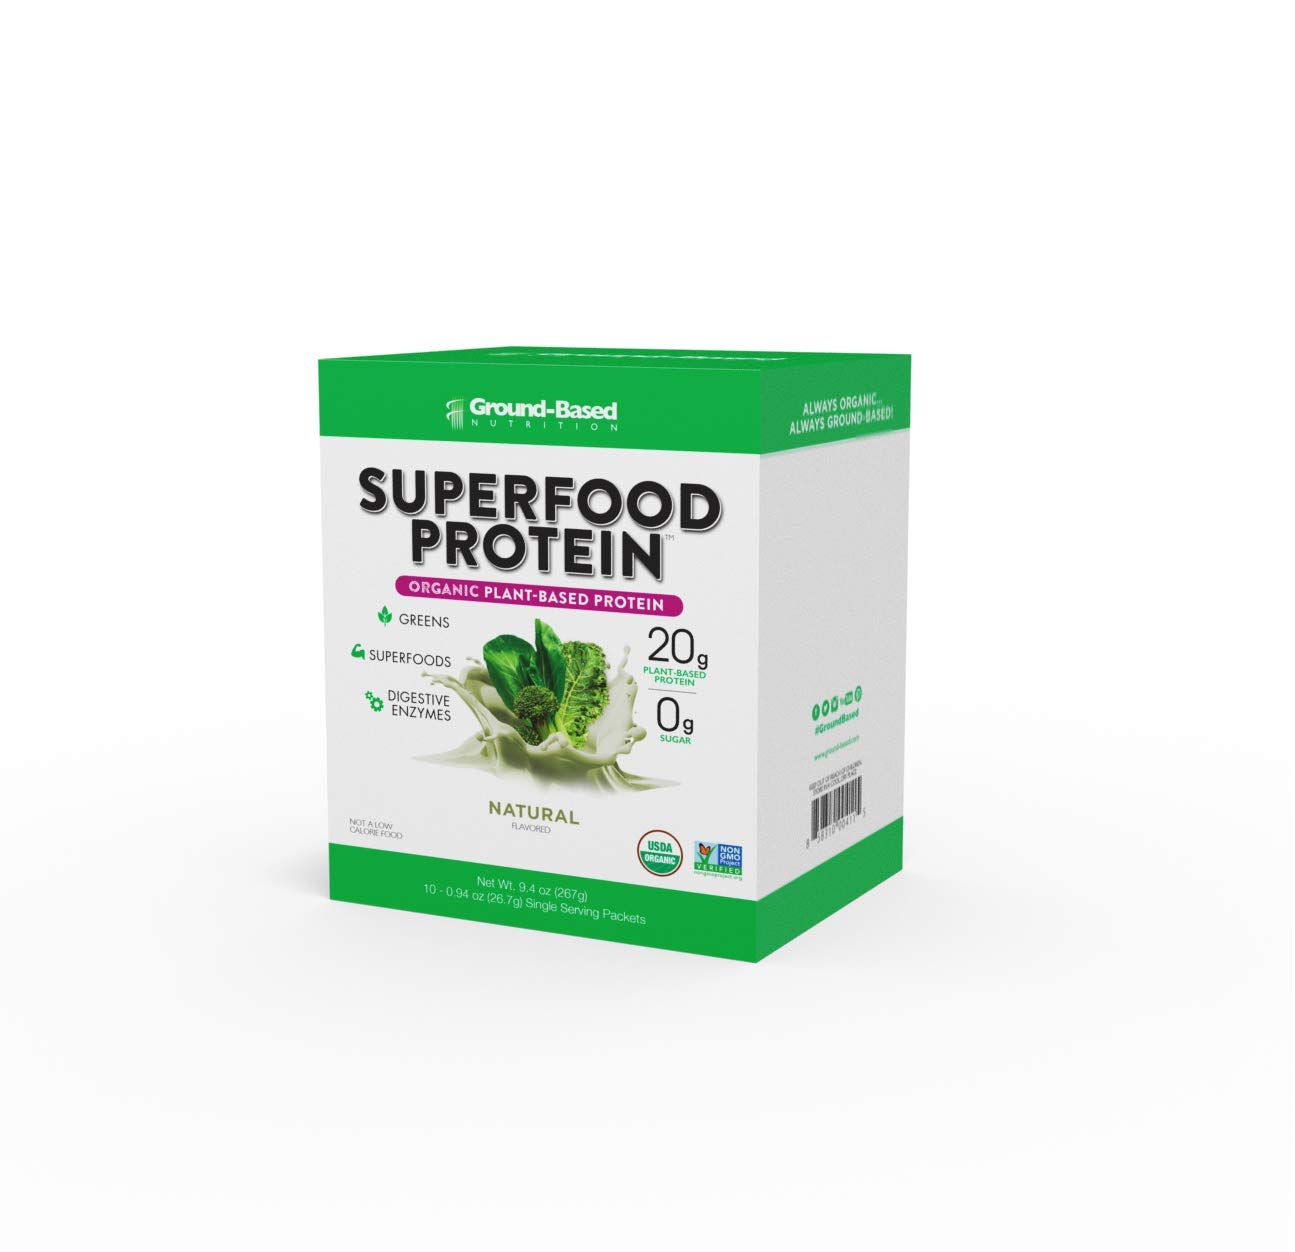 Ground-Based Nutrition Certified Organic Superfood Protein, 100% Plant-Based Protein with Alkalizing Greens, Superfoods and Digestive Enzymes, Helps Build Muscle, Natural Unflavored, Vegan, 10 Count